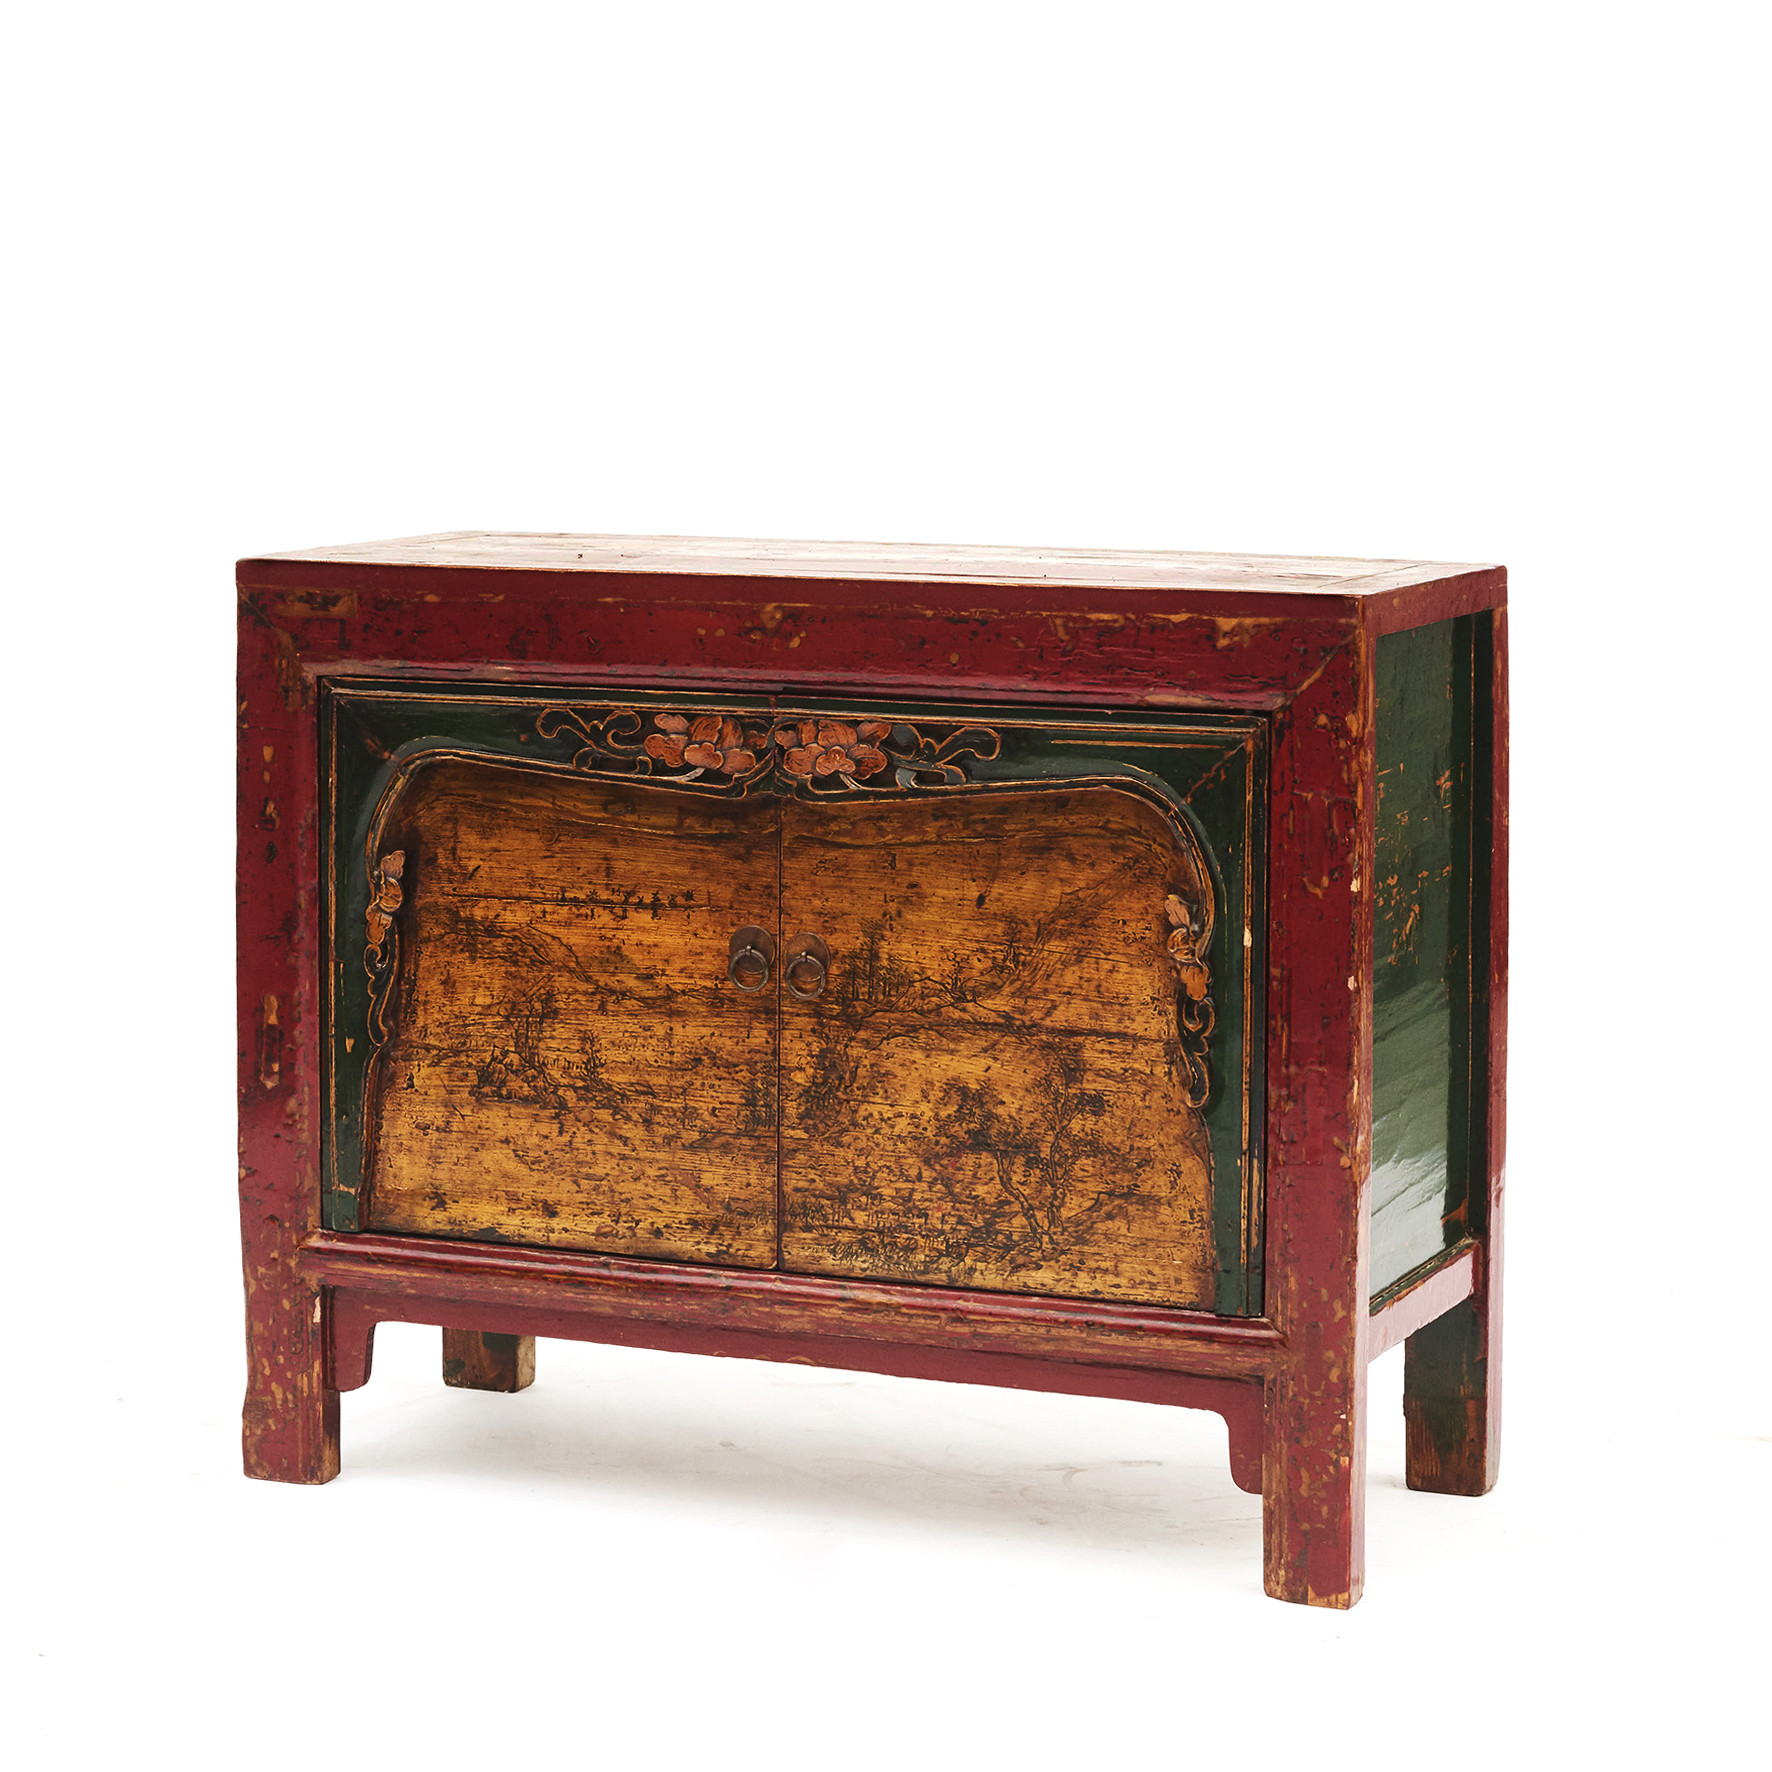 Original decorated sideboard from Gansu province